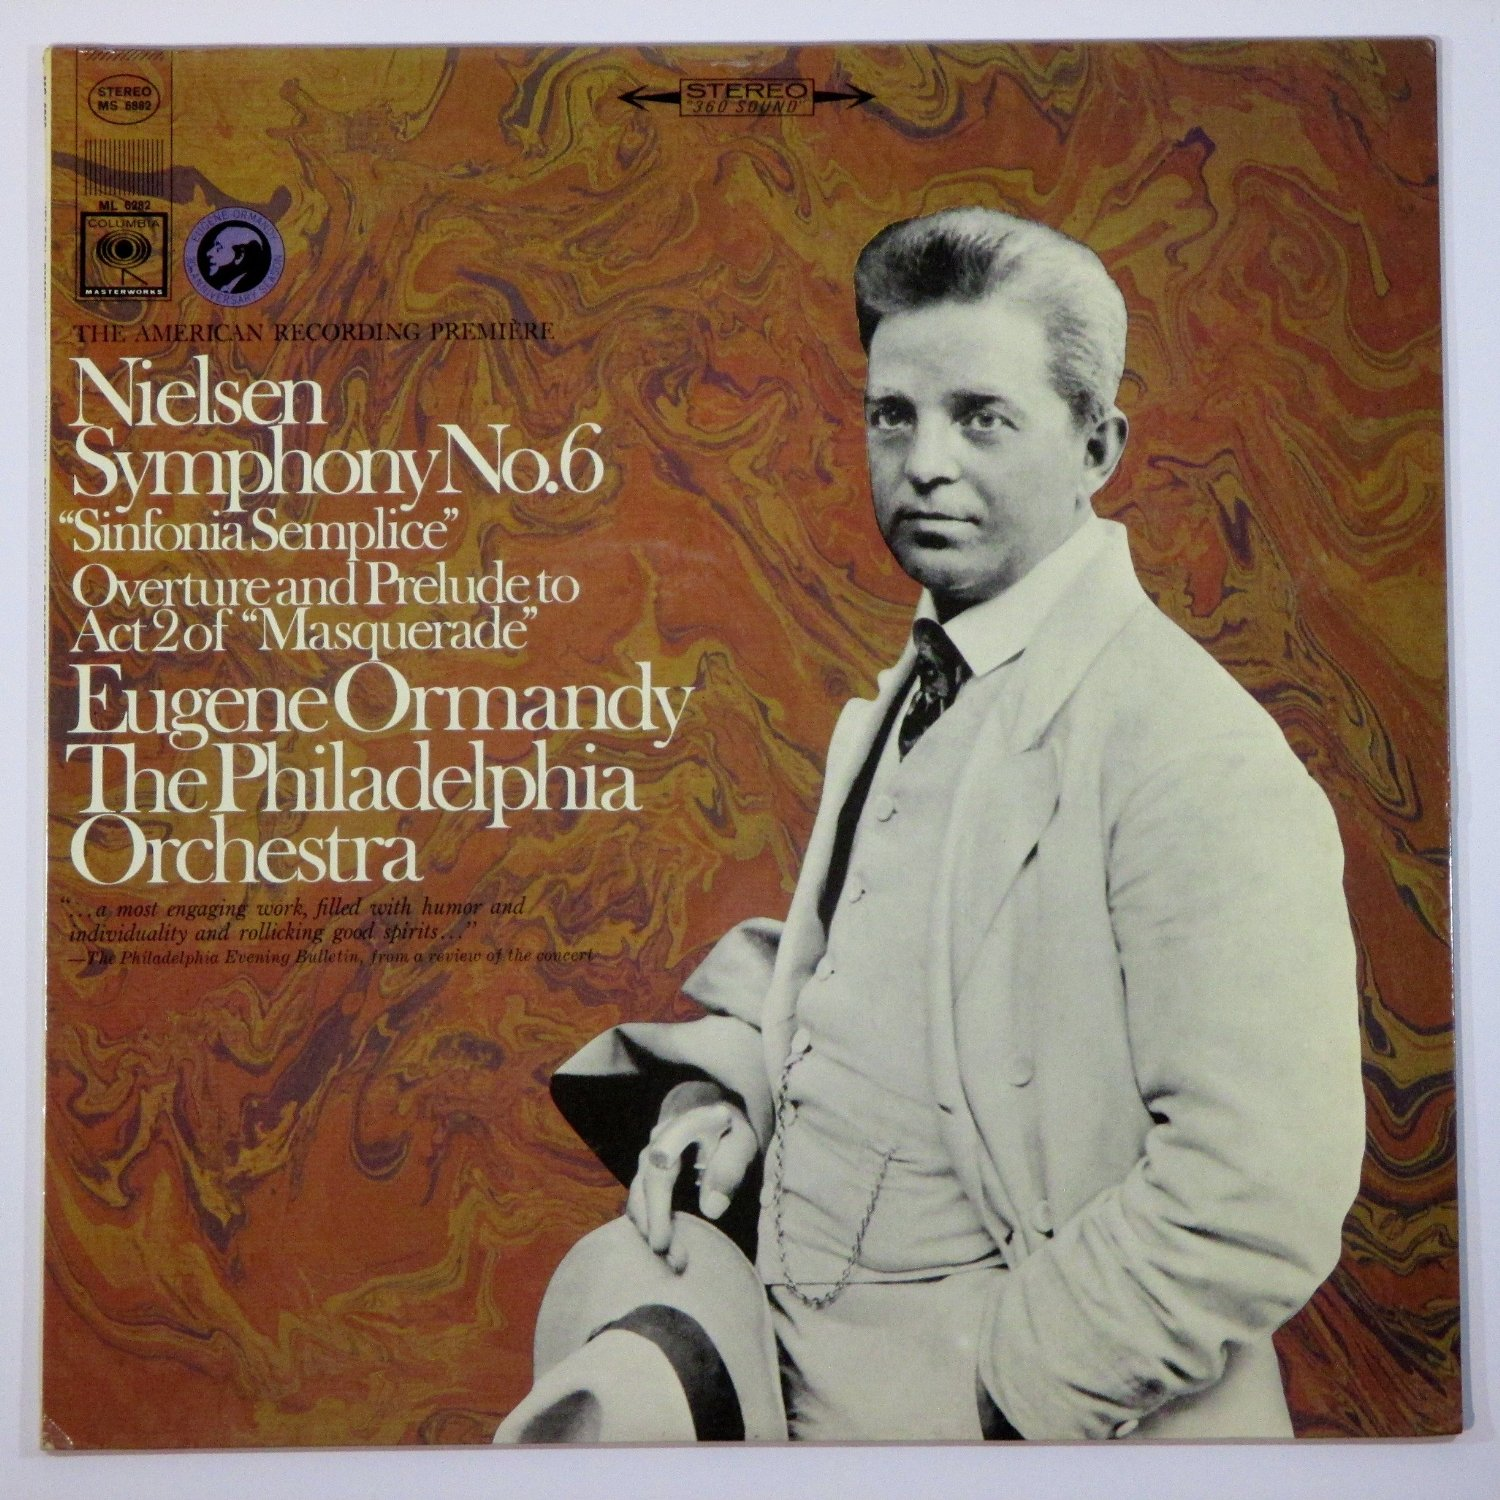 Nielsen Symphony No.6 Sinfonia Semplice Overture and Prelude to Act II of Masquerade